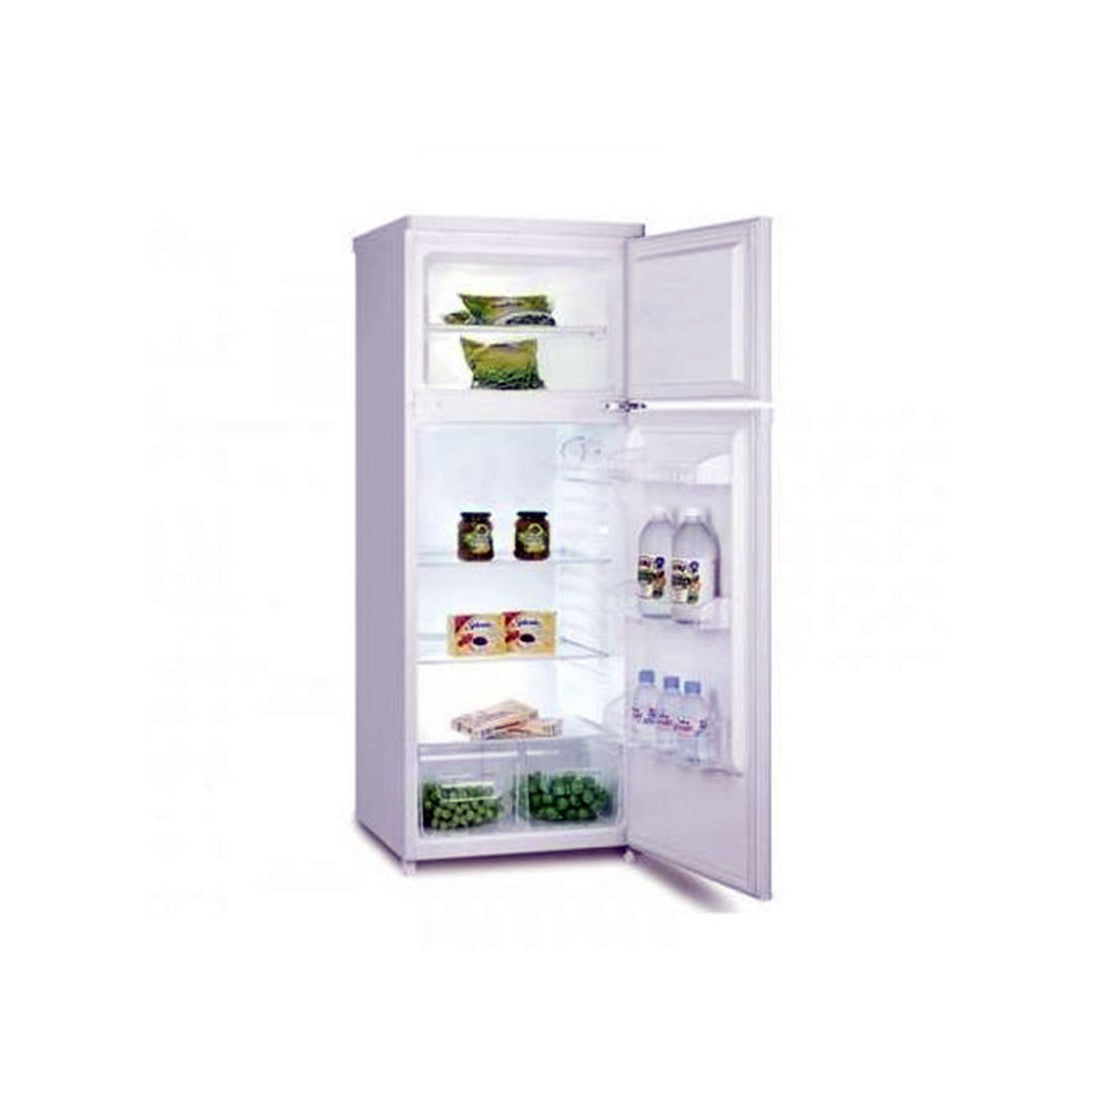 Hisense Double Door Refrigerator-REF260DR - Dool-X IT Republic